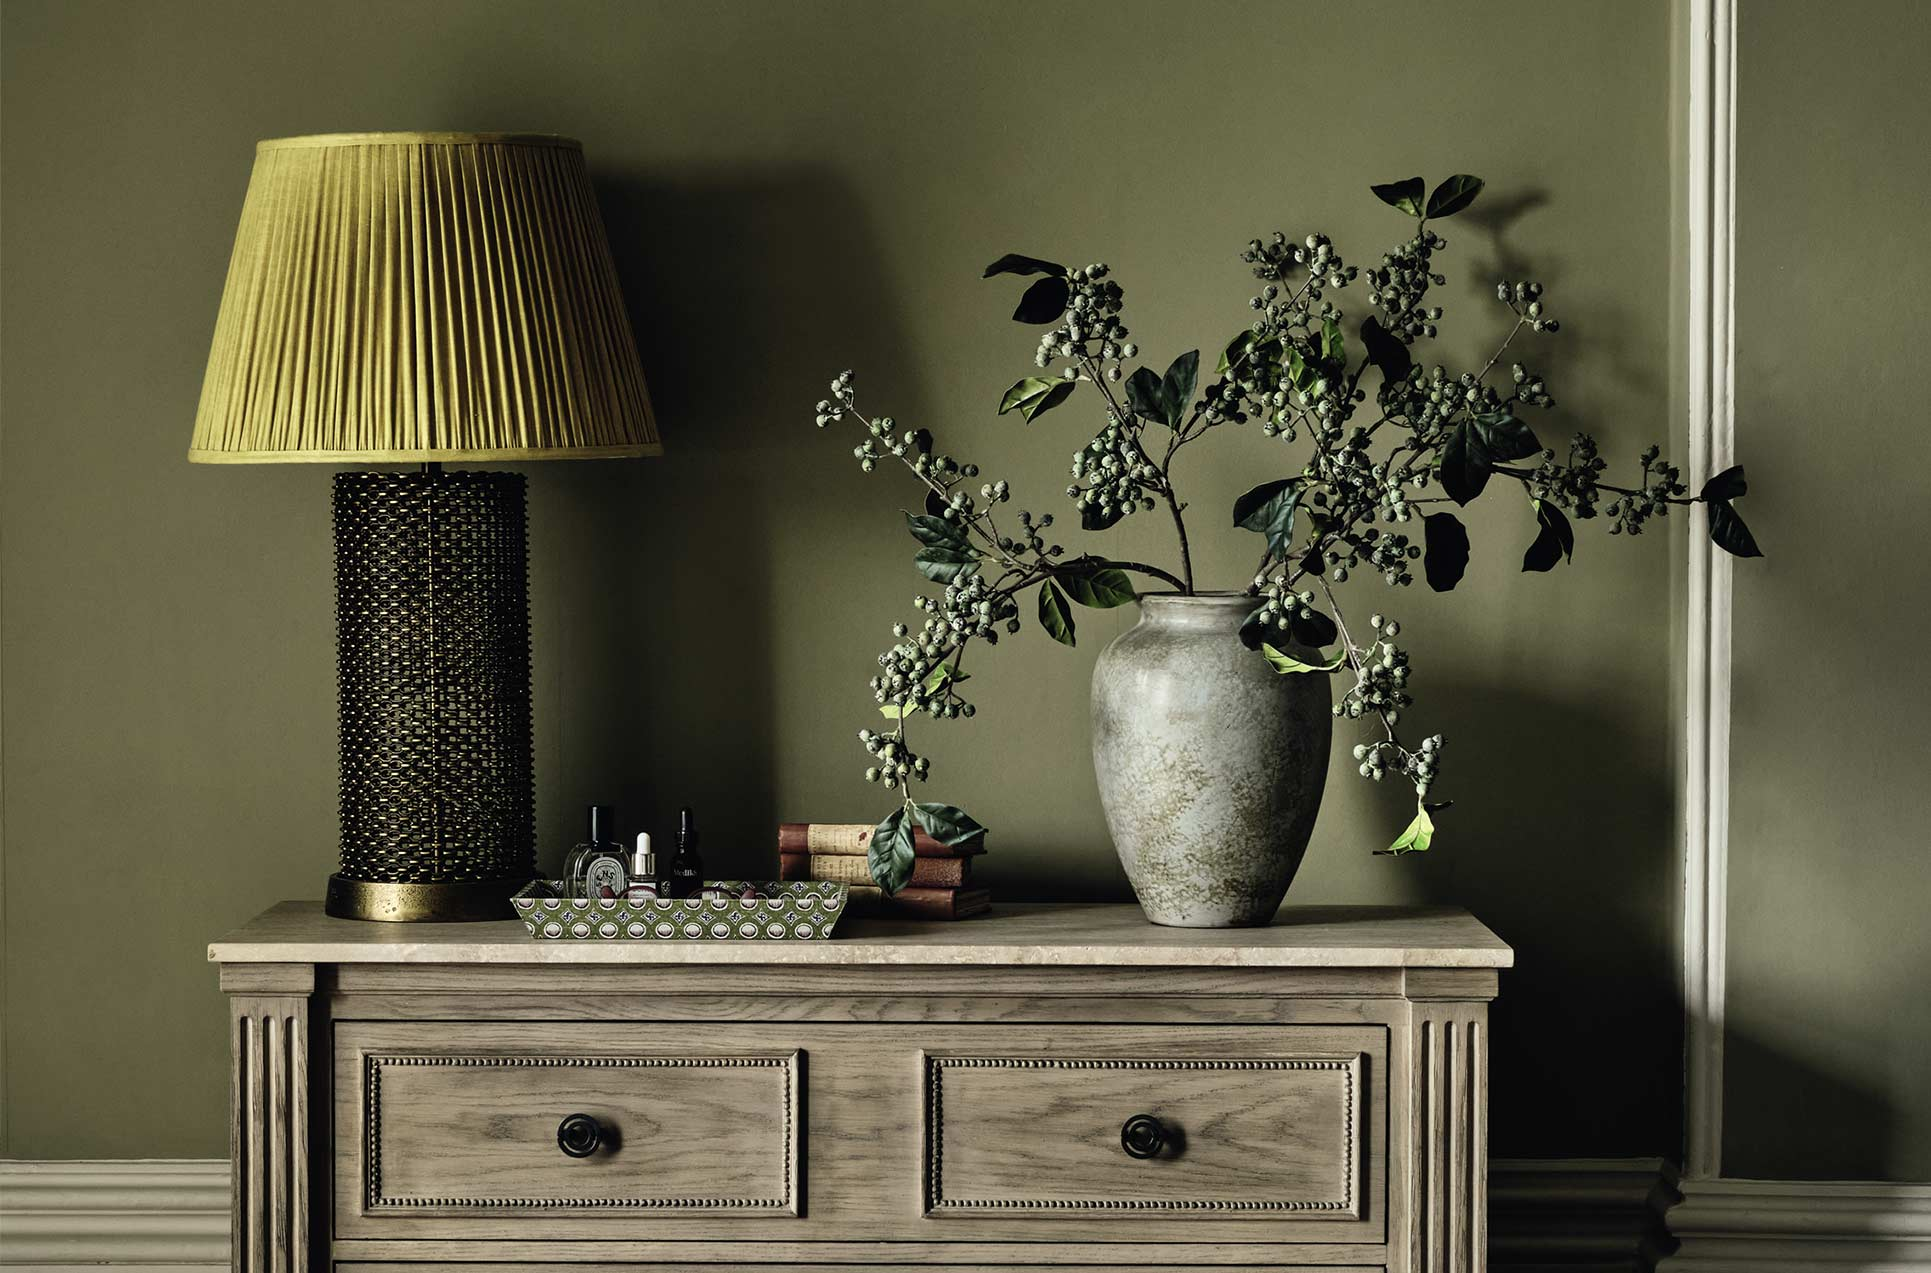 Glass table lamp with a yellow pleated shade, on top of a wooden chest of drawers